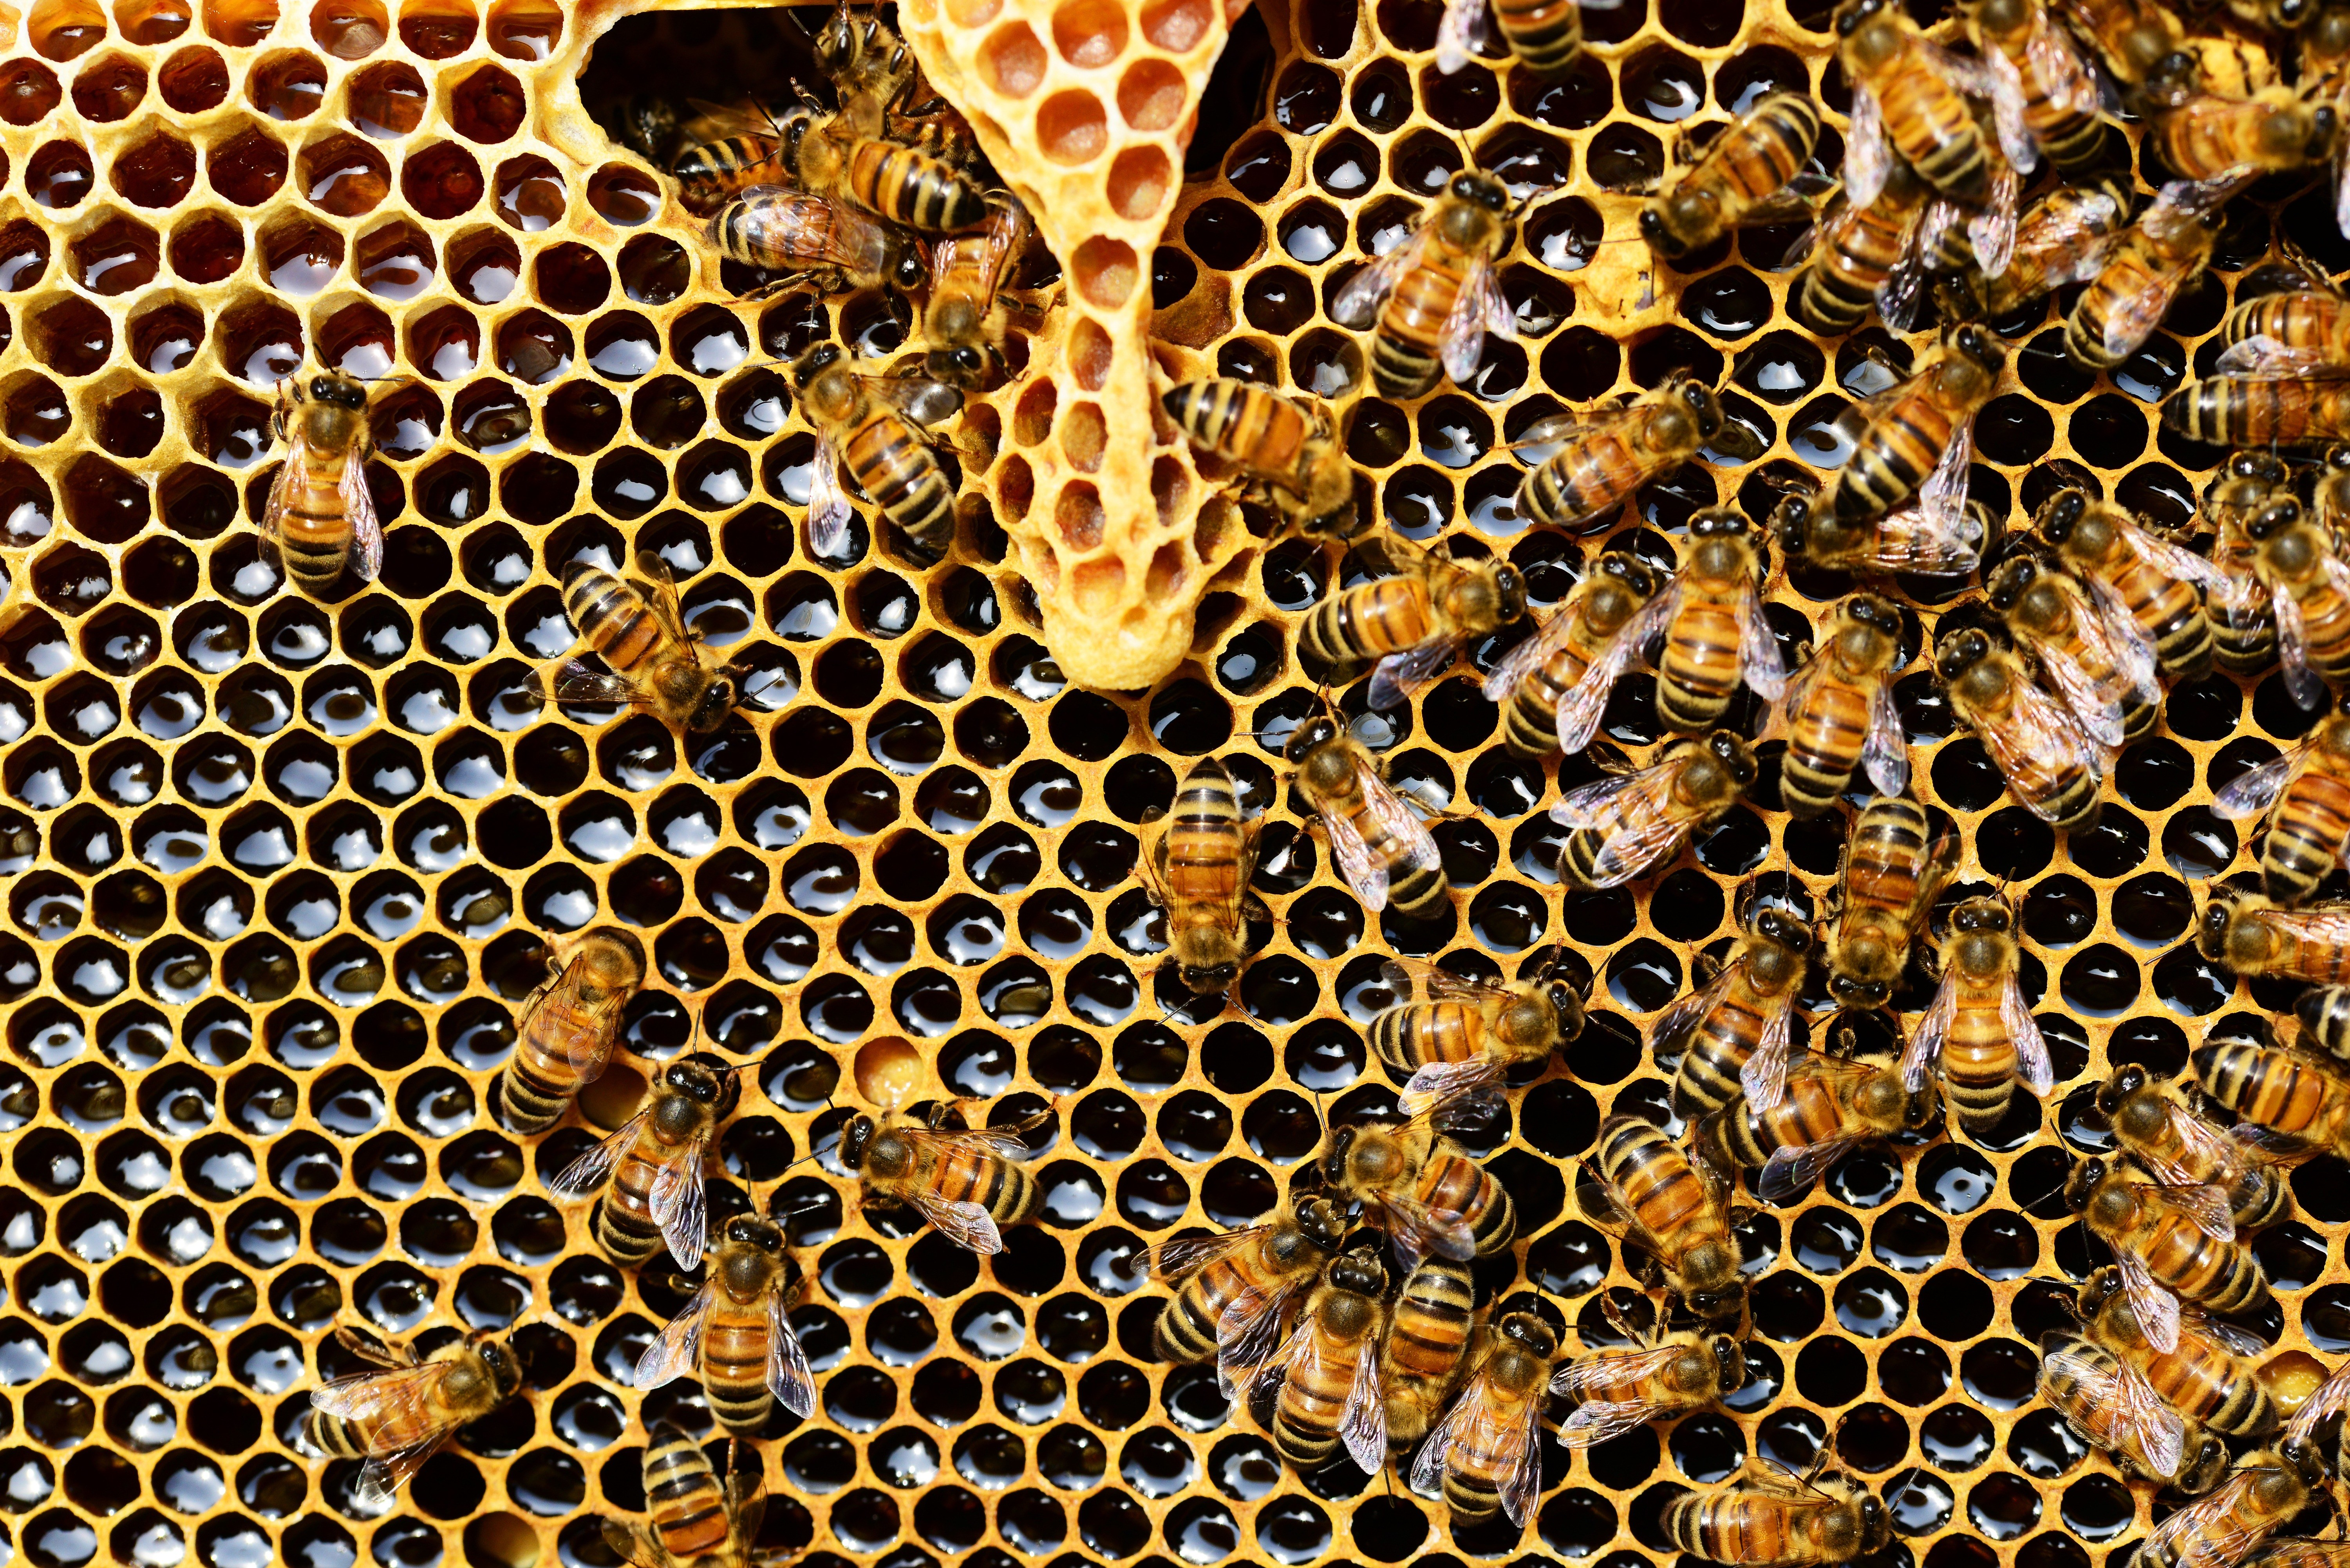 bees beekeeping honey comb hive